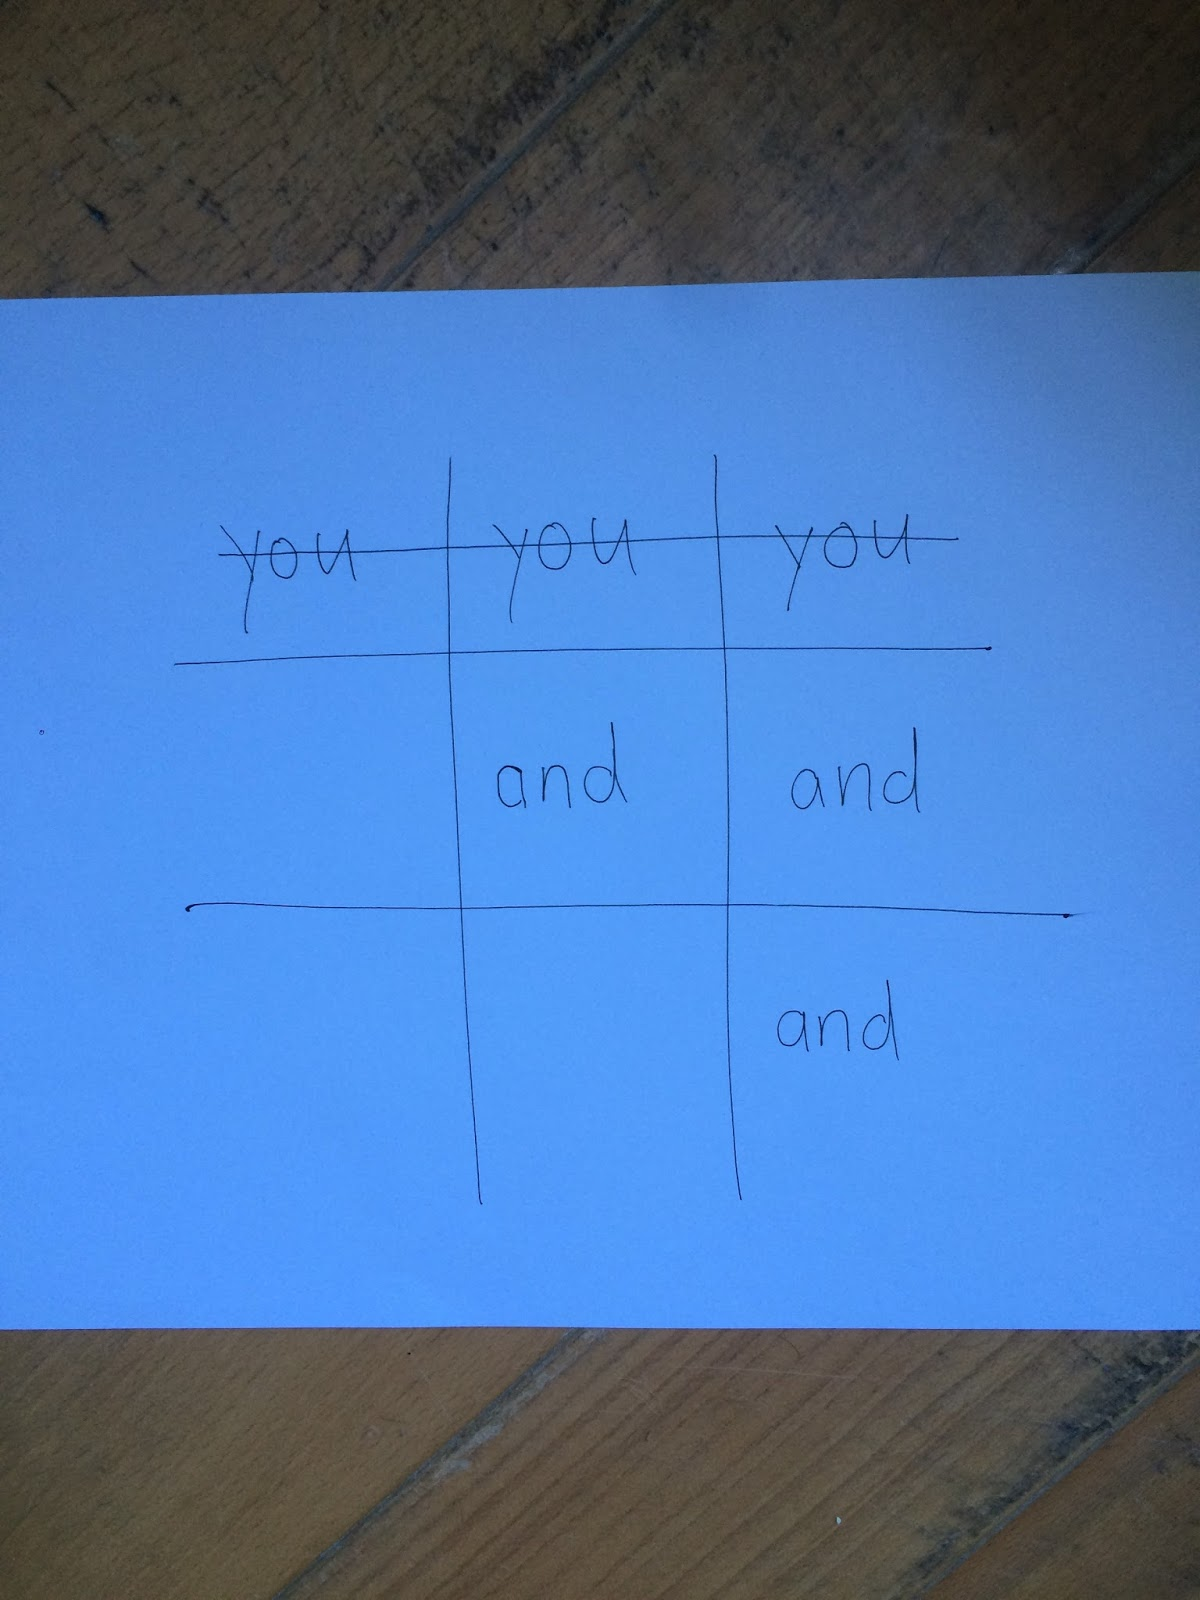 Teaching Vocabs With Tic Tac Toe Grids Roller English